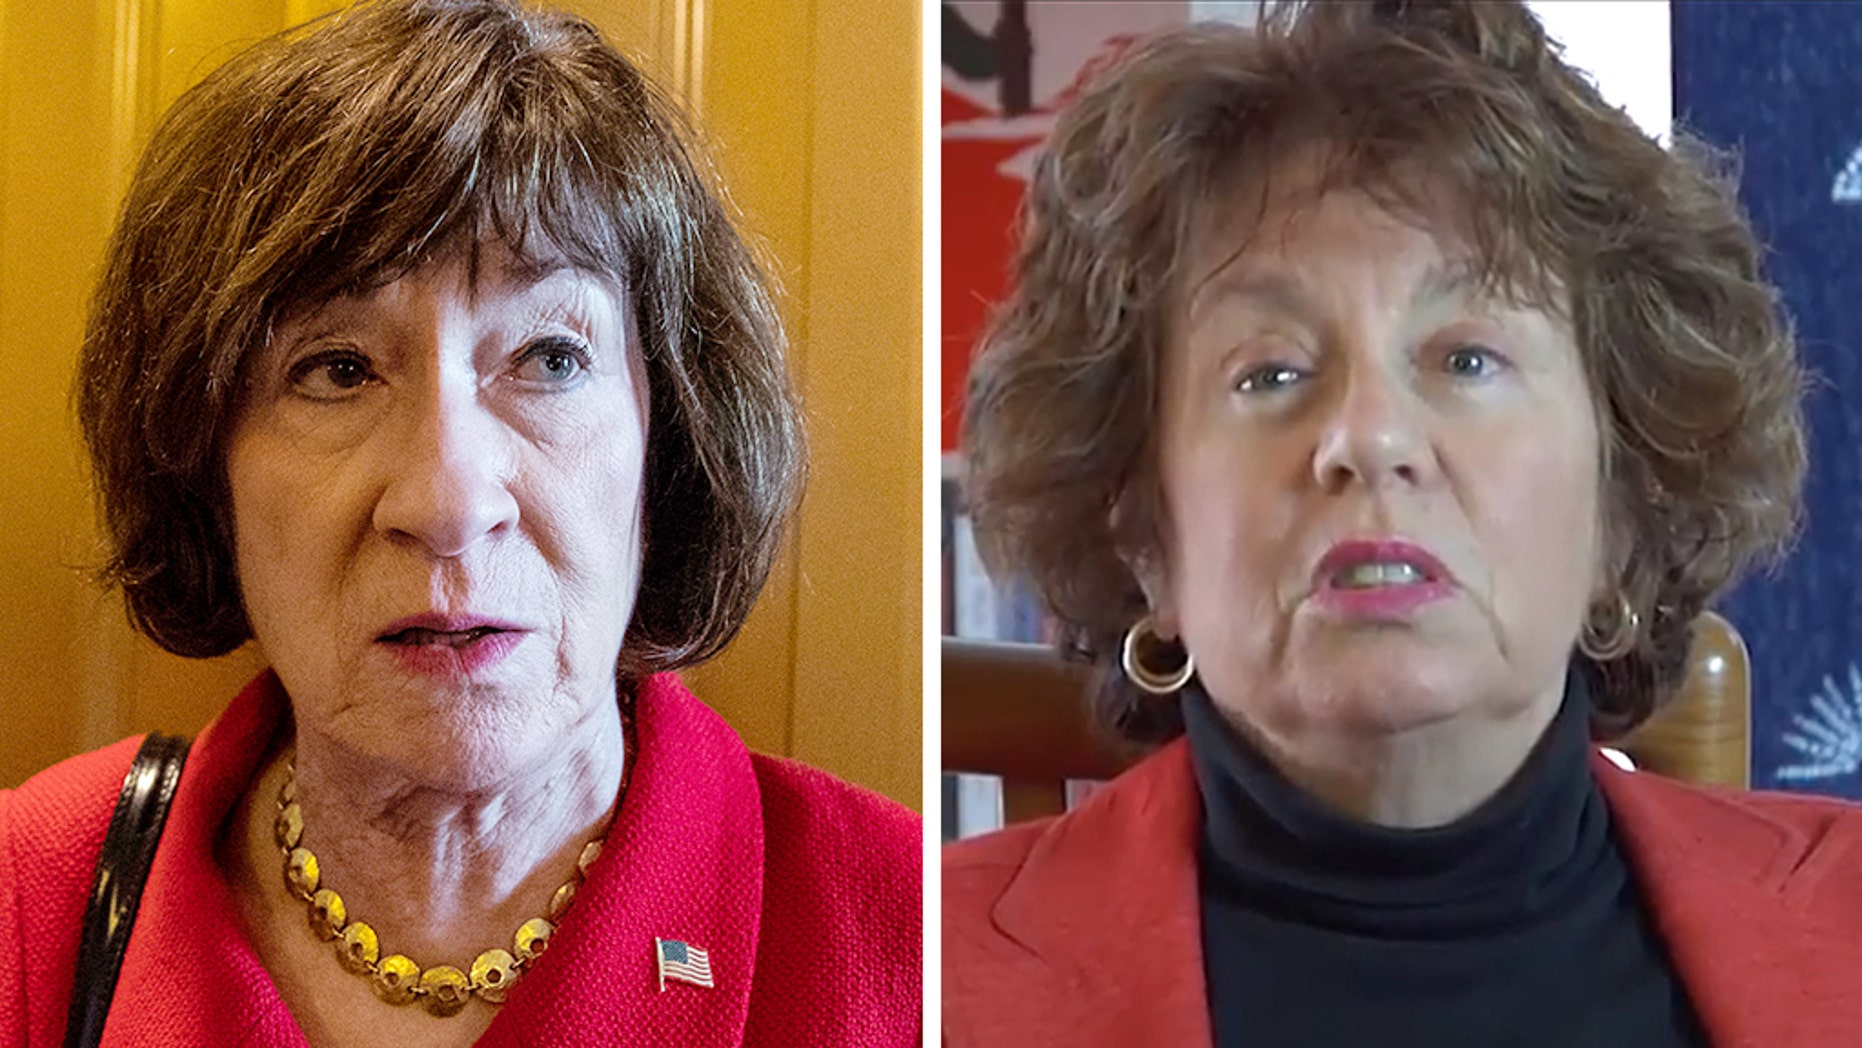 A course offering credits to students who protested Sen. Susan Collins, R- Maine, (left) was organized byDr. Susan Feiner (right), a former professor at the University of Southern Maine.